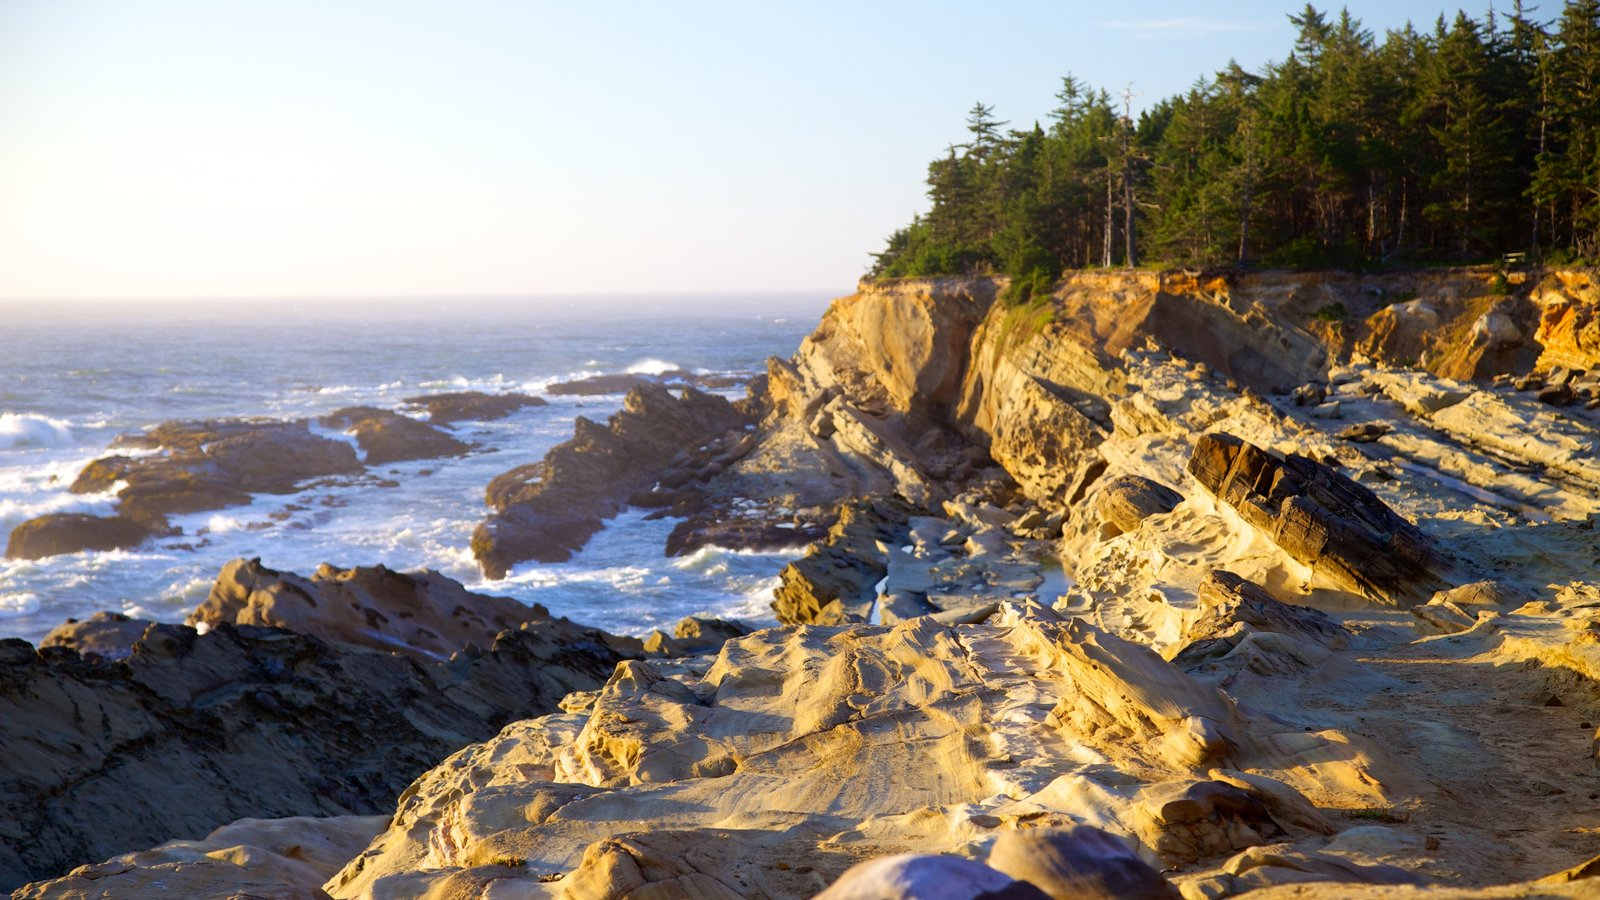 Shore Acres State Park featuring rocky coastline and landscape views